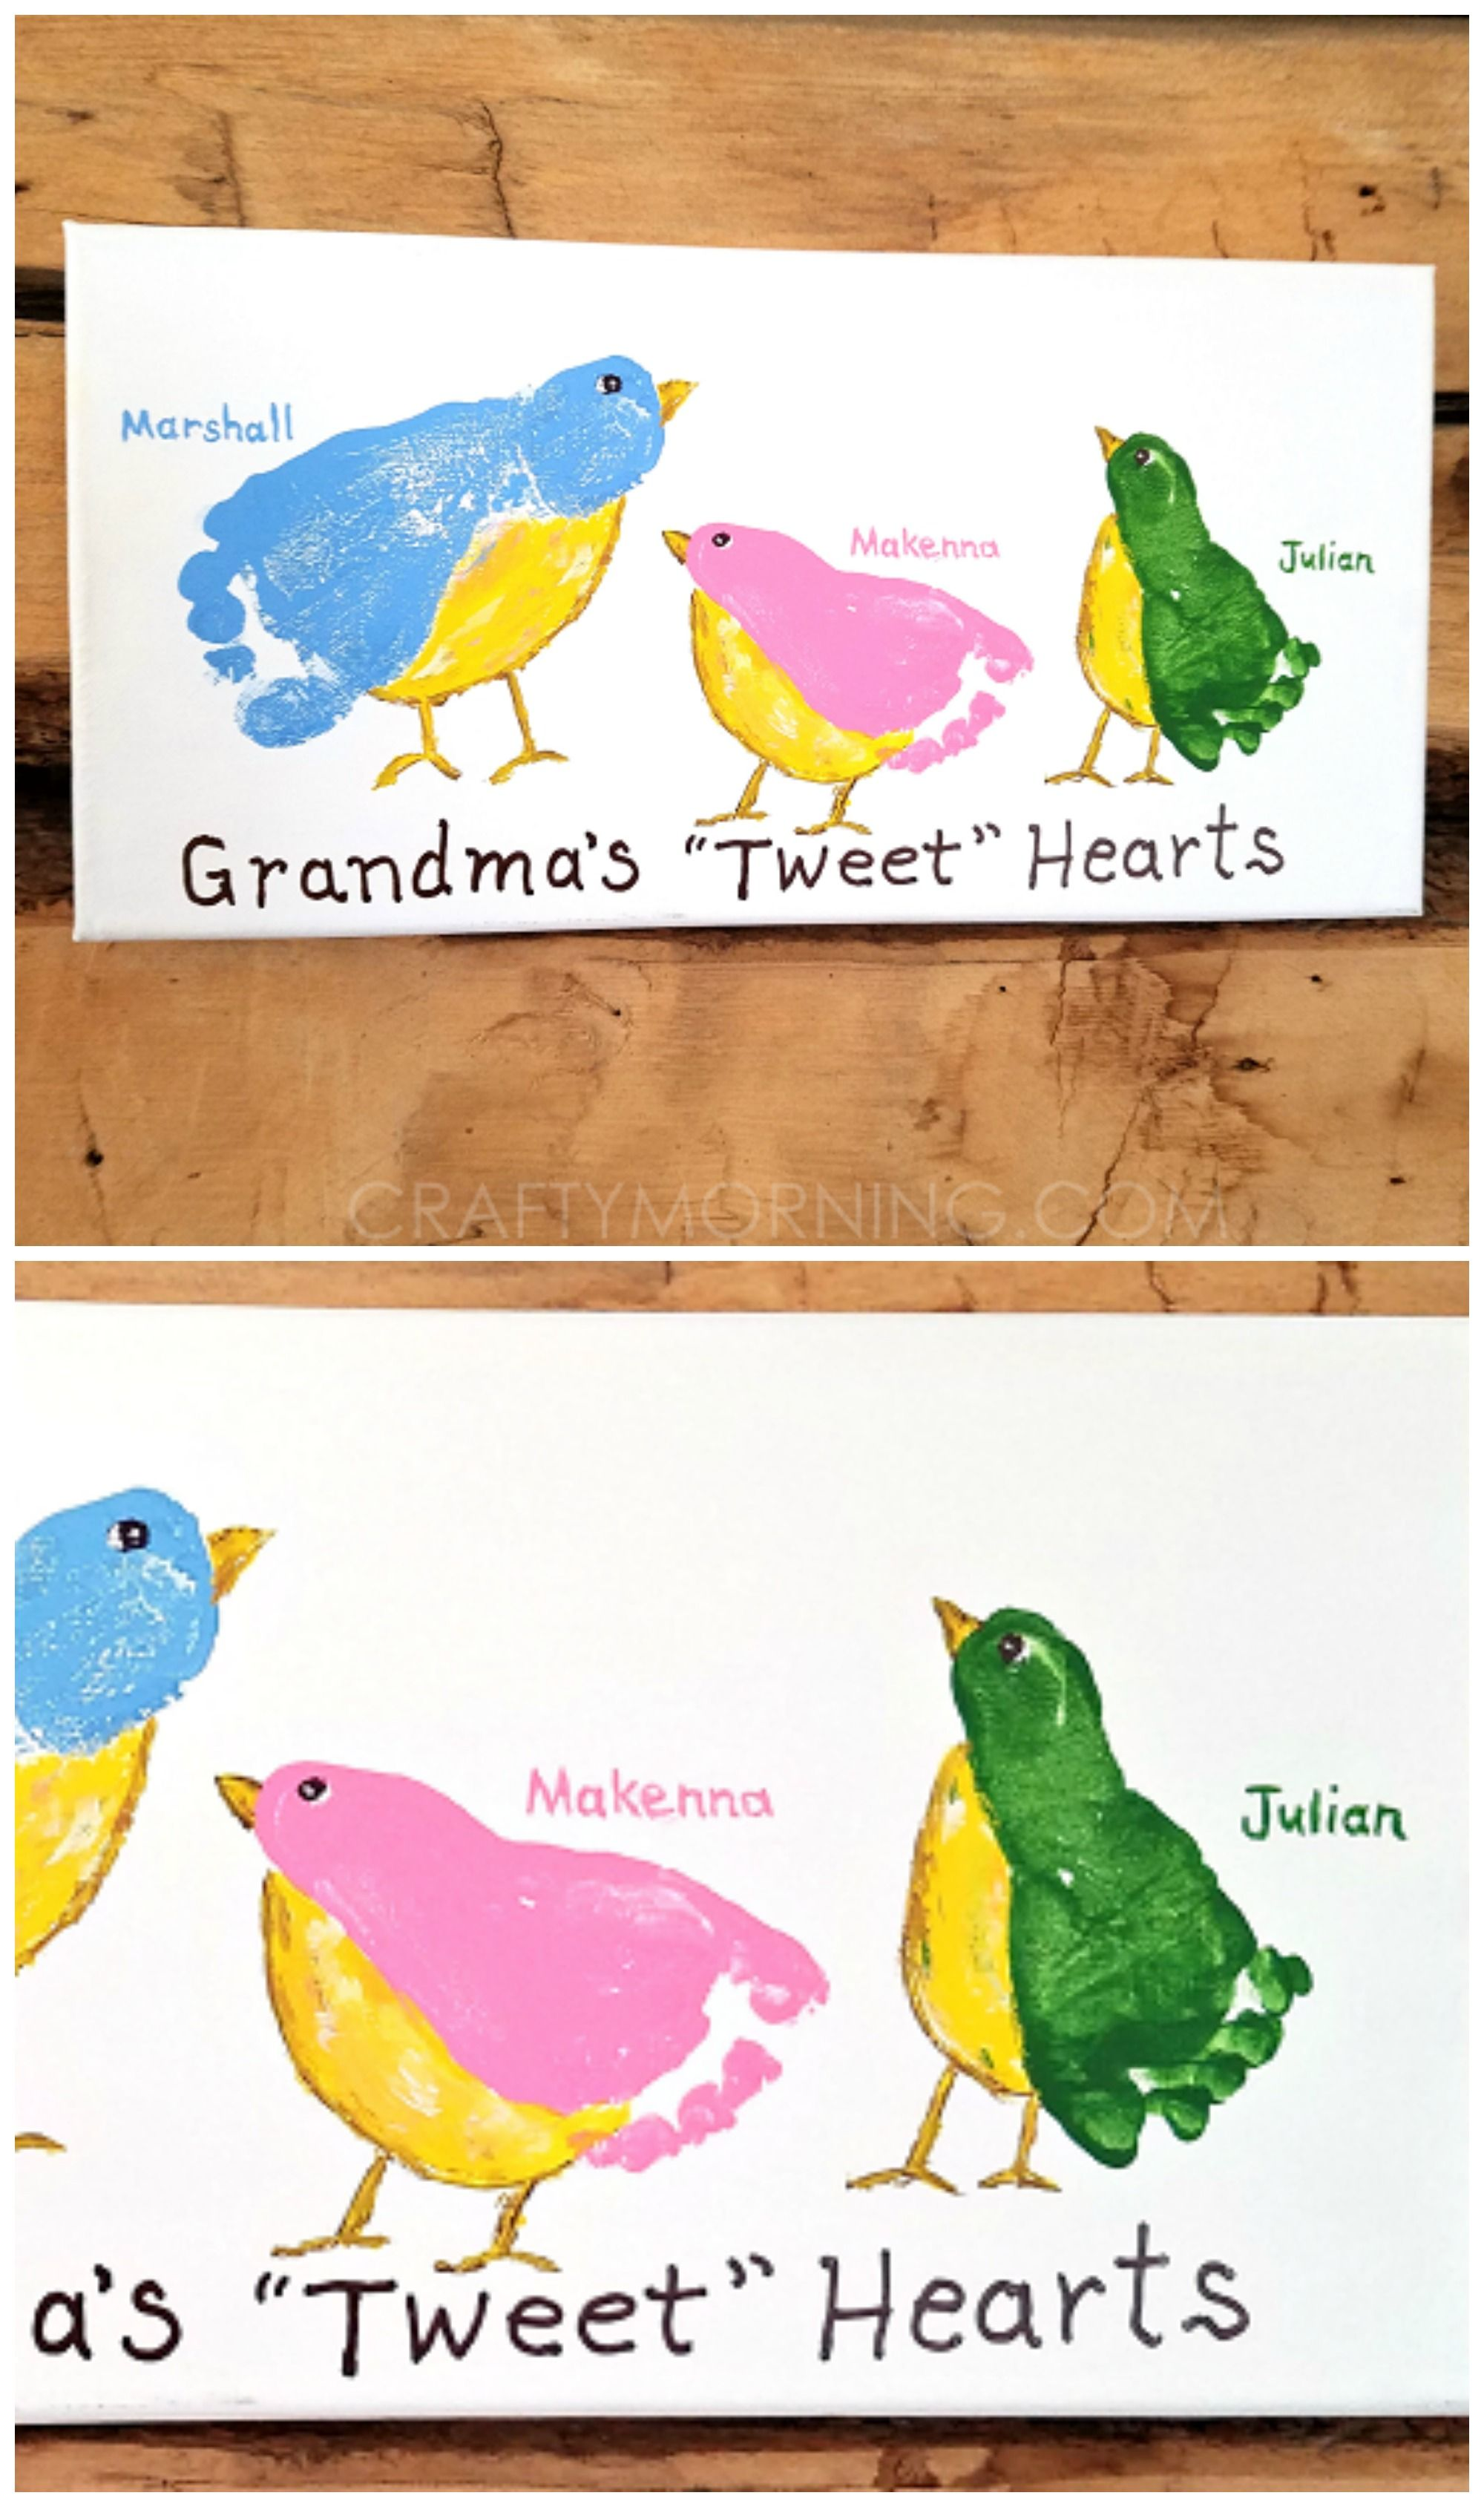 Grandmas tweet hearts footprint canvas what a cute gift from grandmas tweet hearts footprint canvas what a cute gift from the grandkids for negle